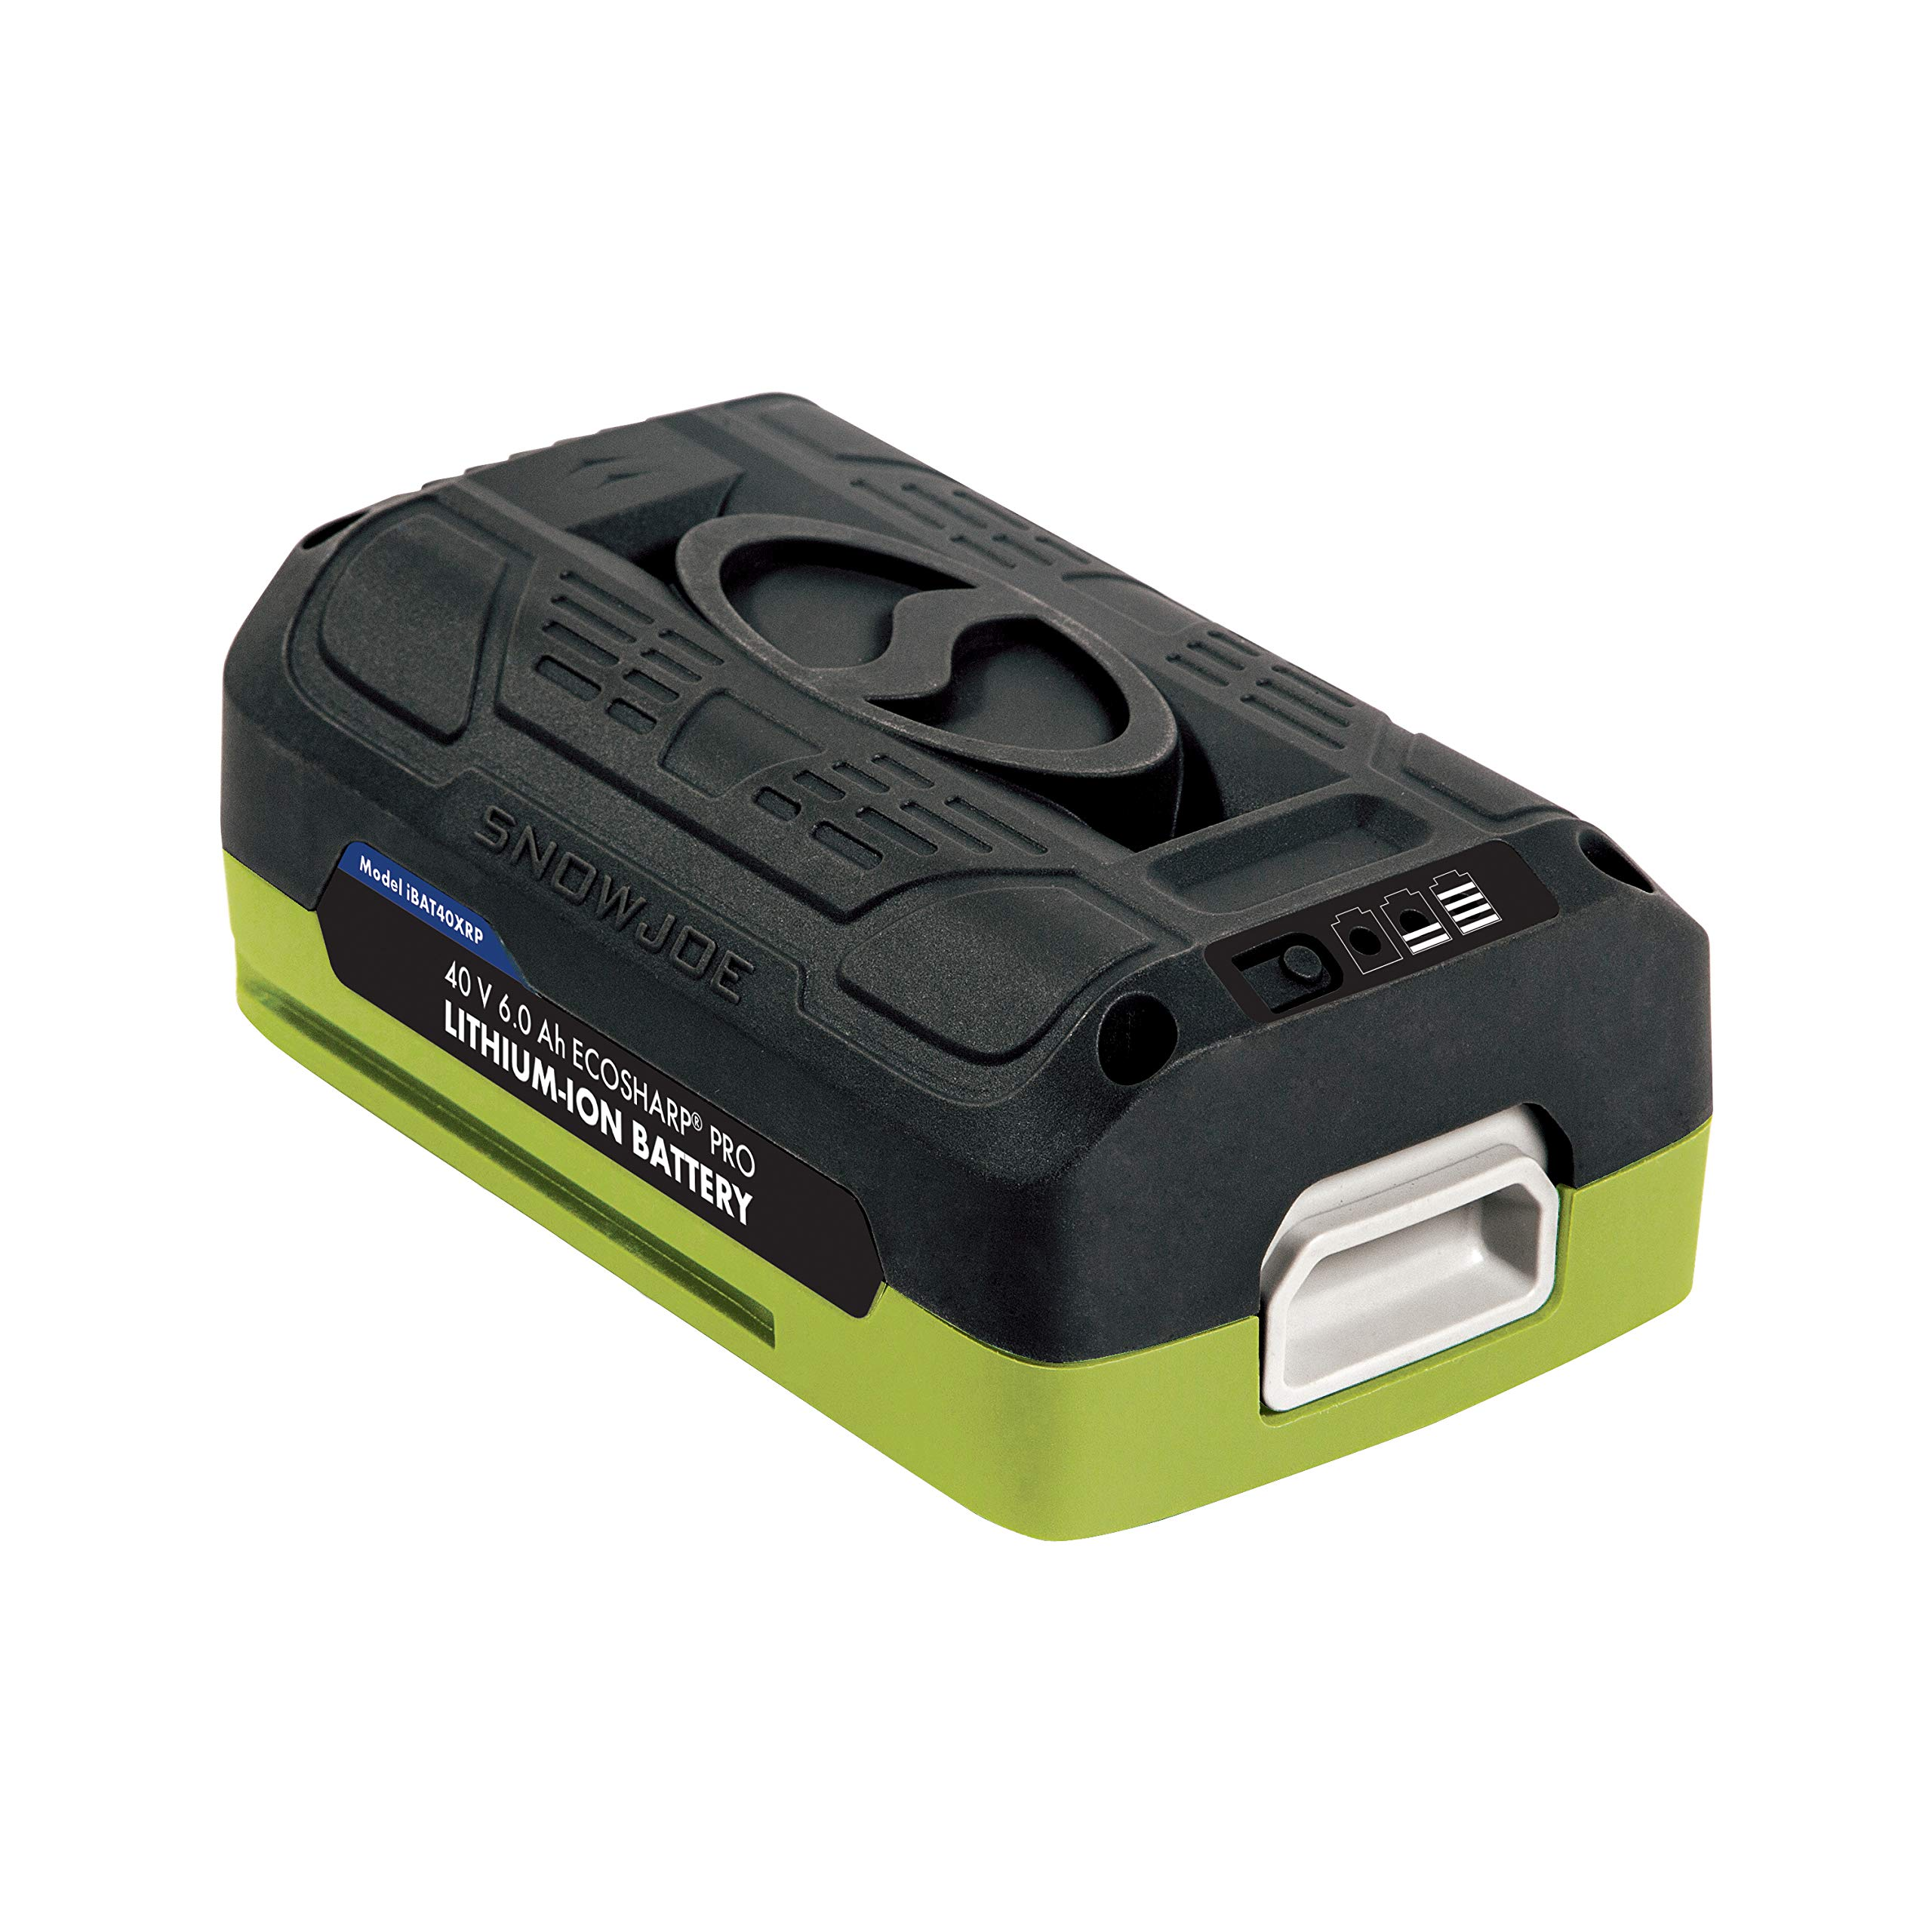 Snow Joe + Sun Joe iBAT40XRP iON EcoSharp PRO 40V 6.0 Ah Lithium-Ion Battery by Snow Joe